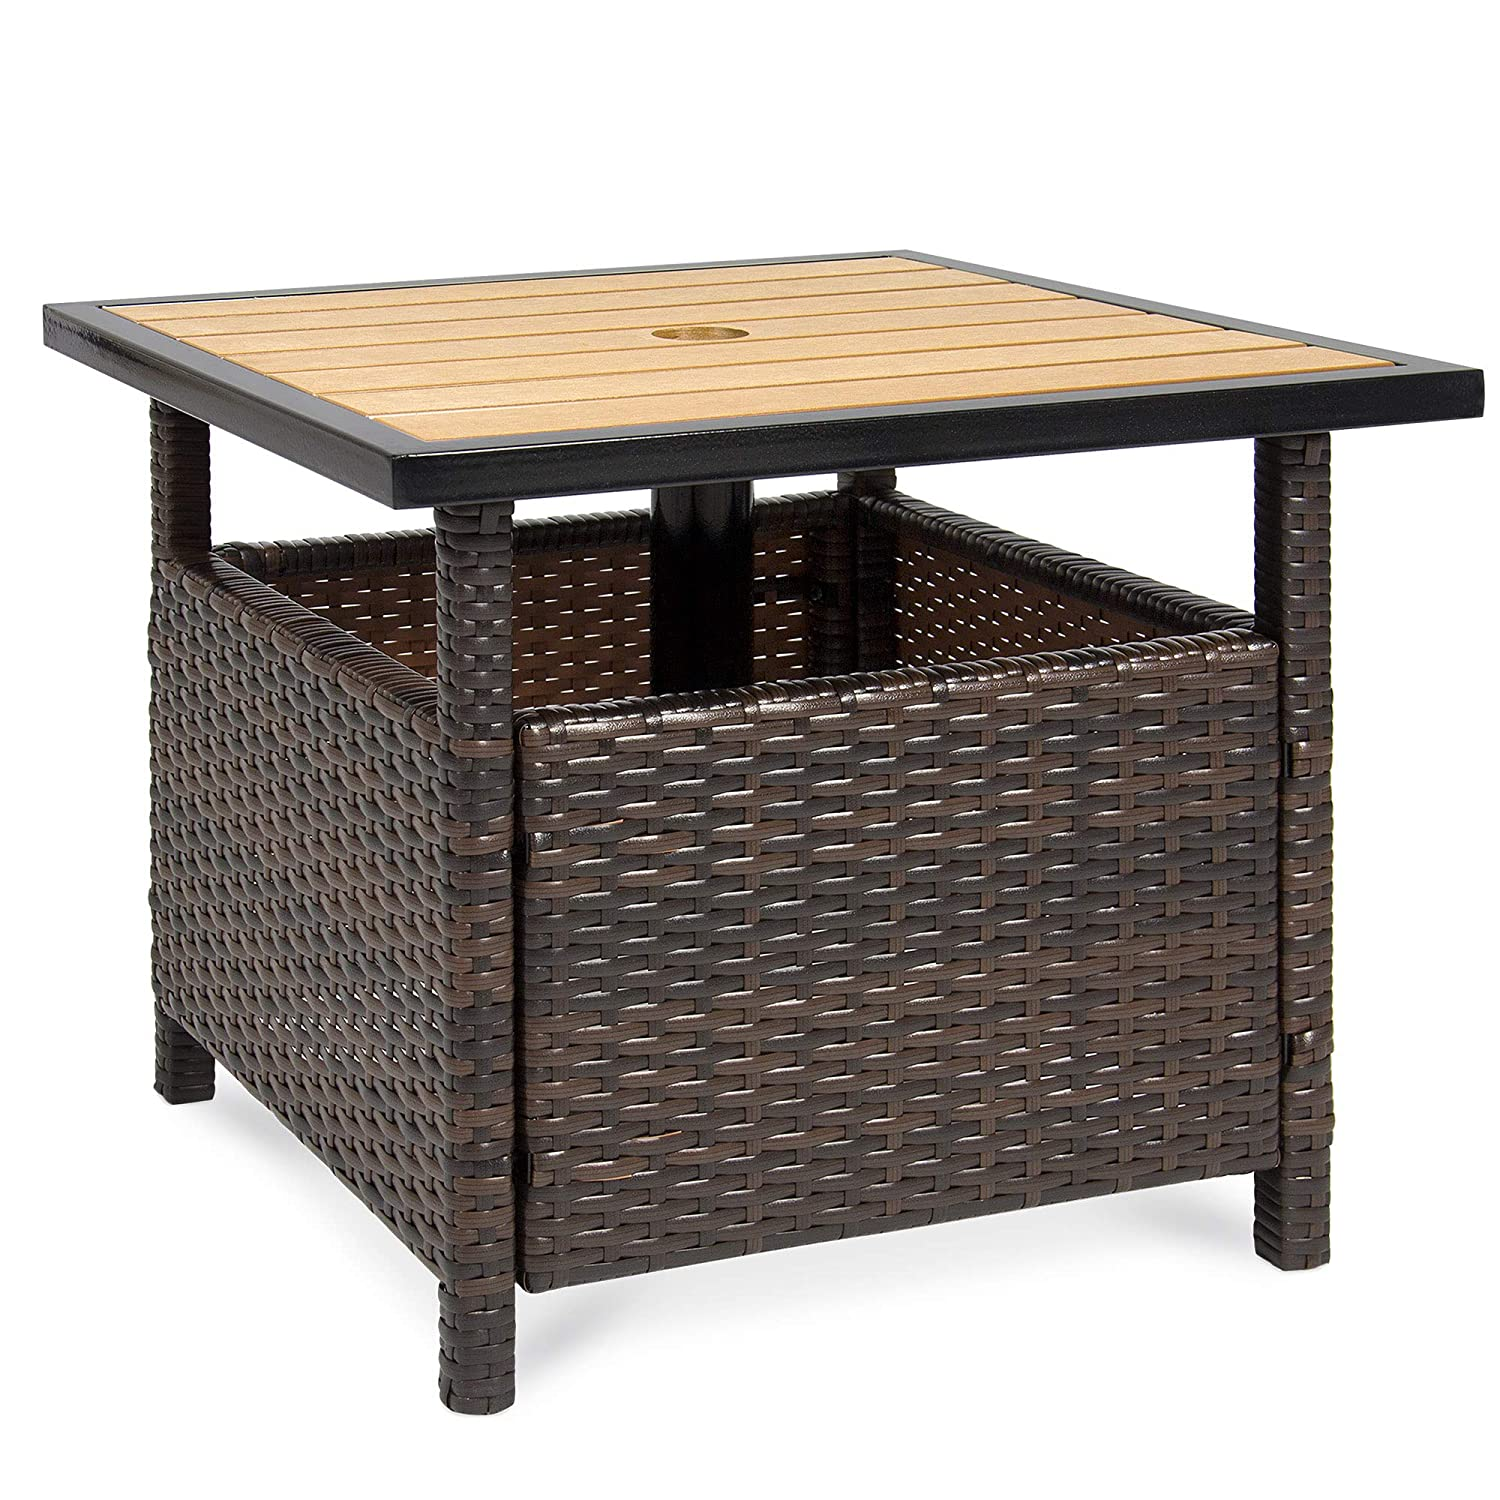 Amazon com best choice products outdoor furniture wicker rattan patio umbrella stand table for garden pool deck brown garden outdoor